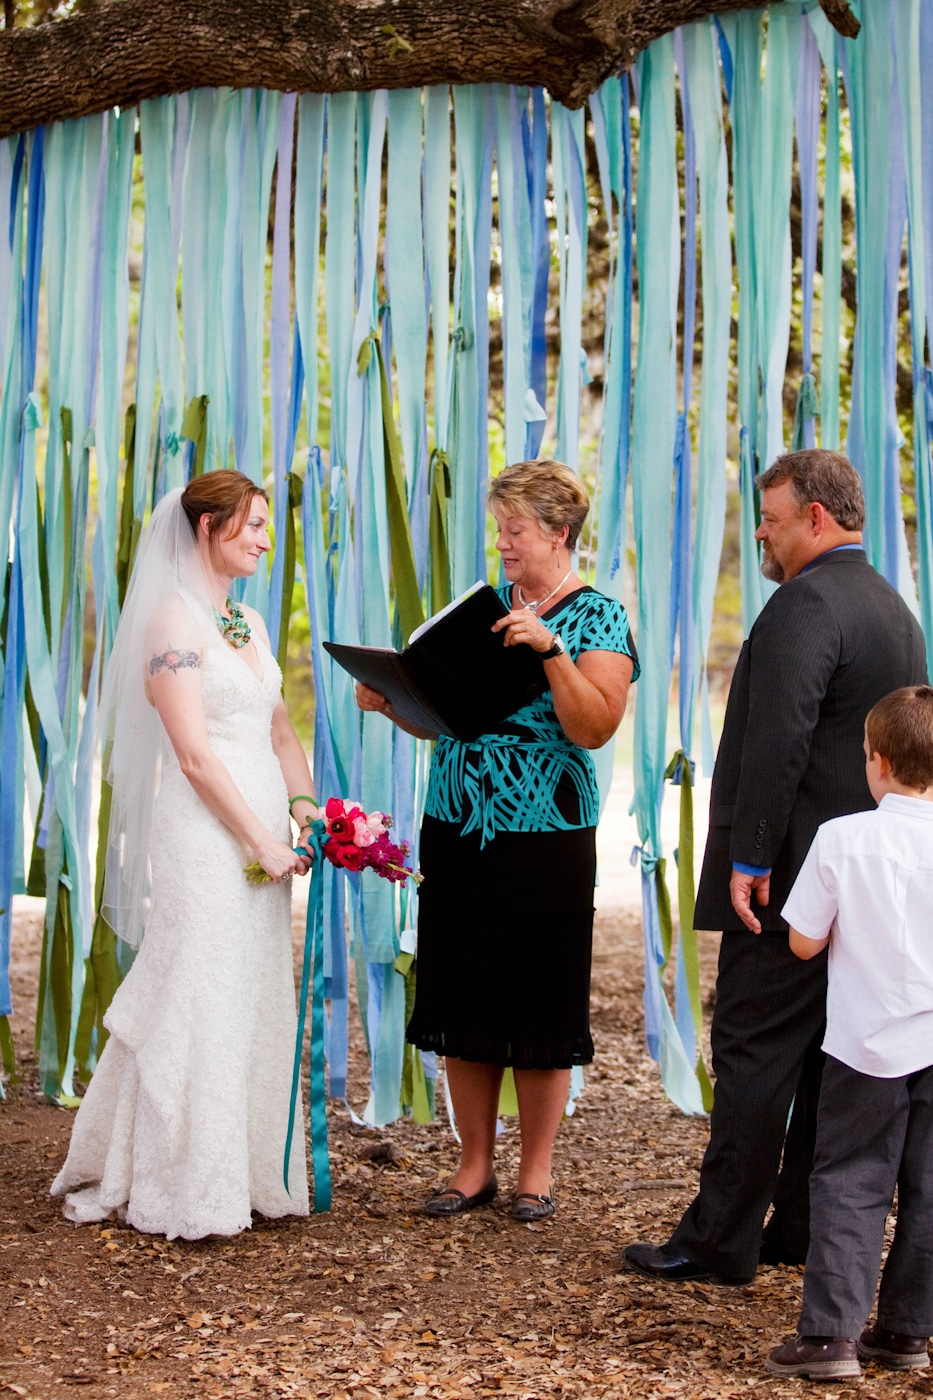 Wedding Wednesday: DIY Fabric Streamer Ceremony Backdrop